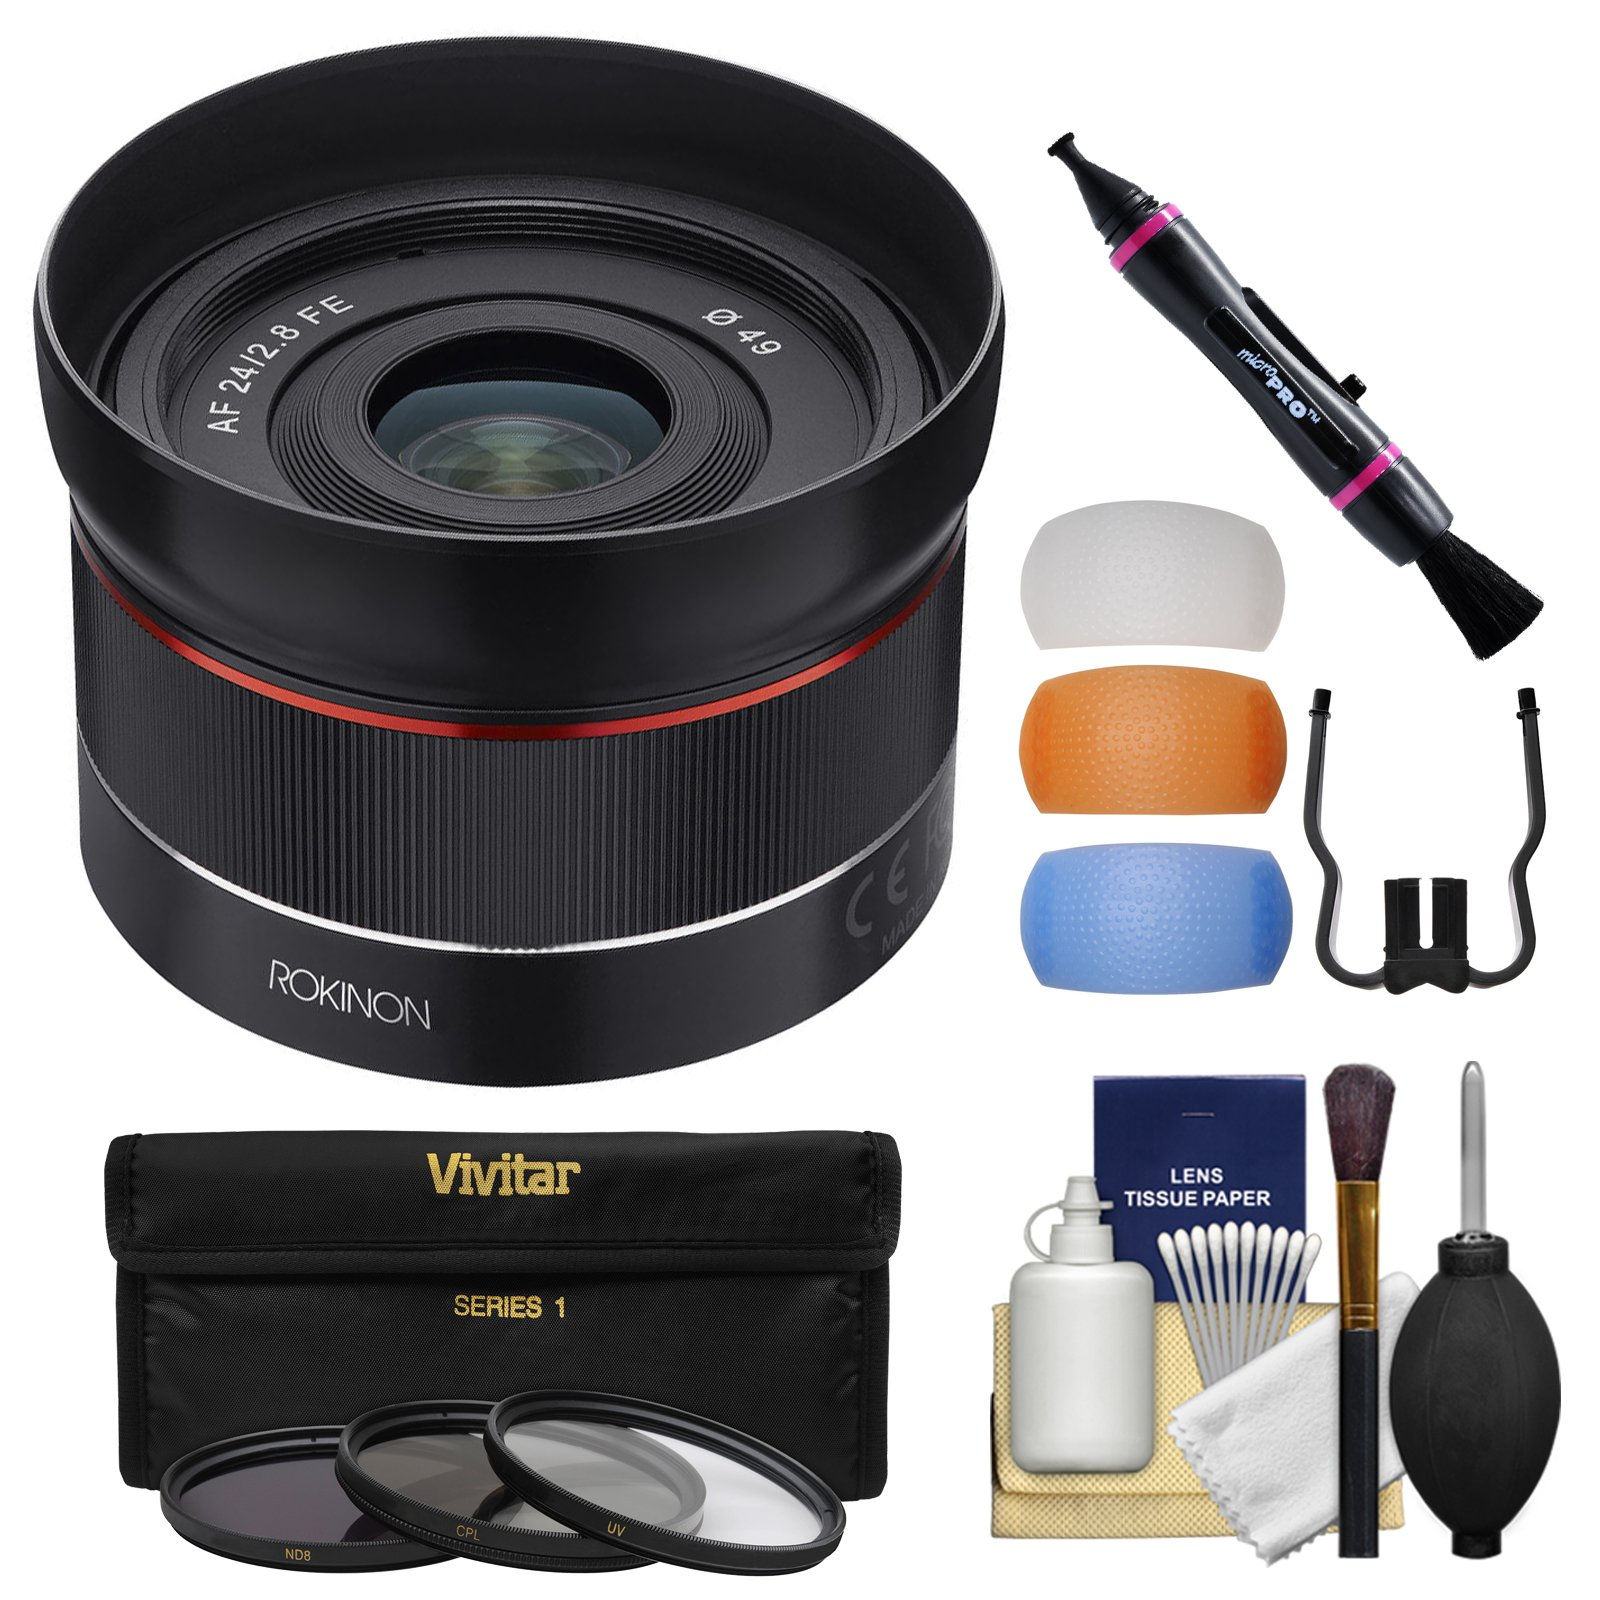 Rokinon 24mm f/2.8 Autofocus Full Frame Lens with Filters + Cleaning Kit for Sony Alpha E-Mount/FE Camera by Rokinon